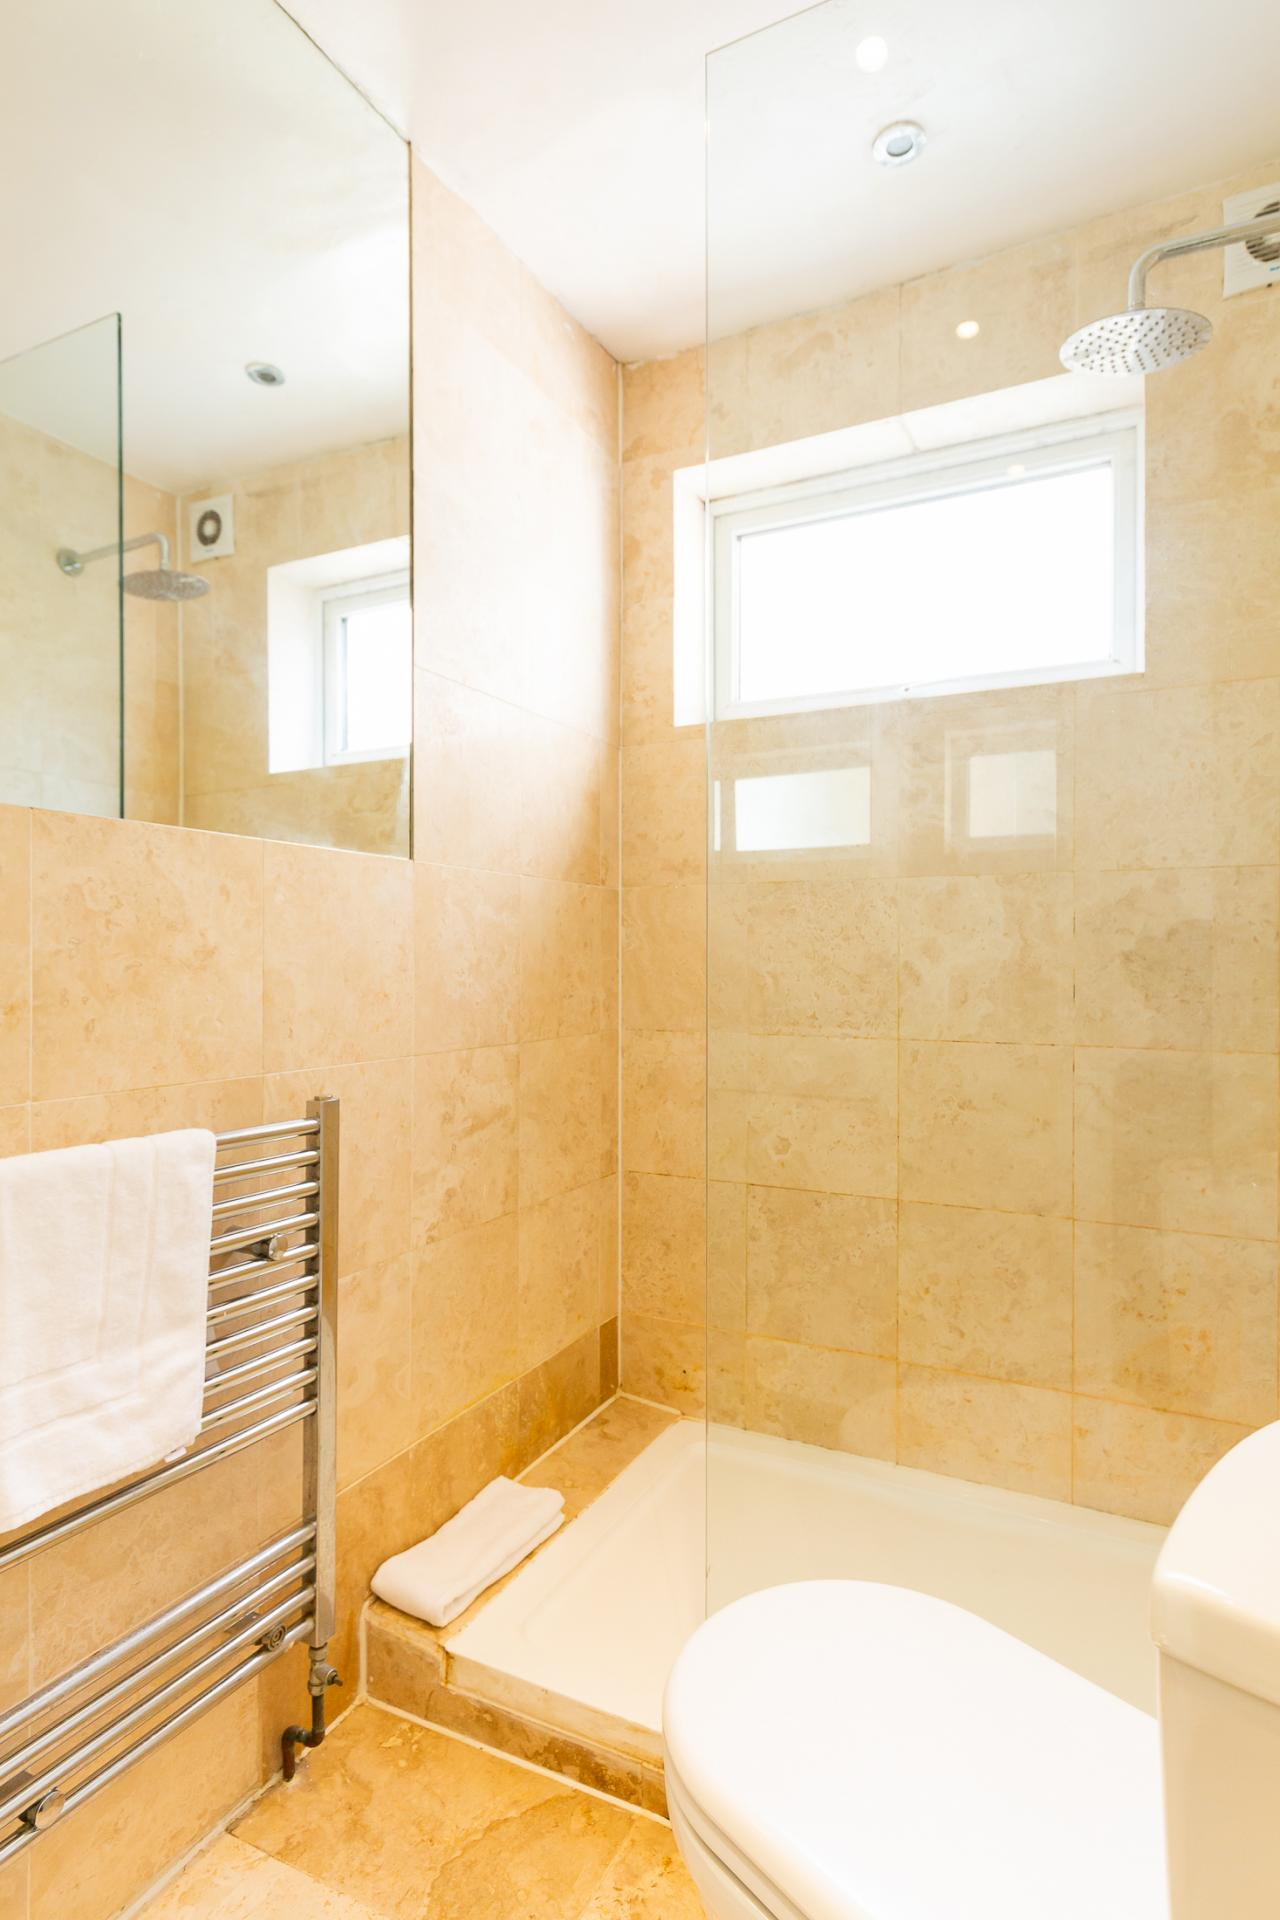 Bathroom at ZO Notting Hill Apartments, Maida Vale, London - Citybase Apartments